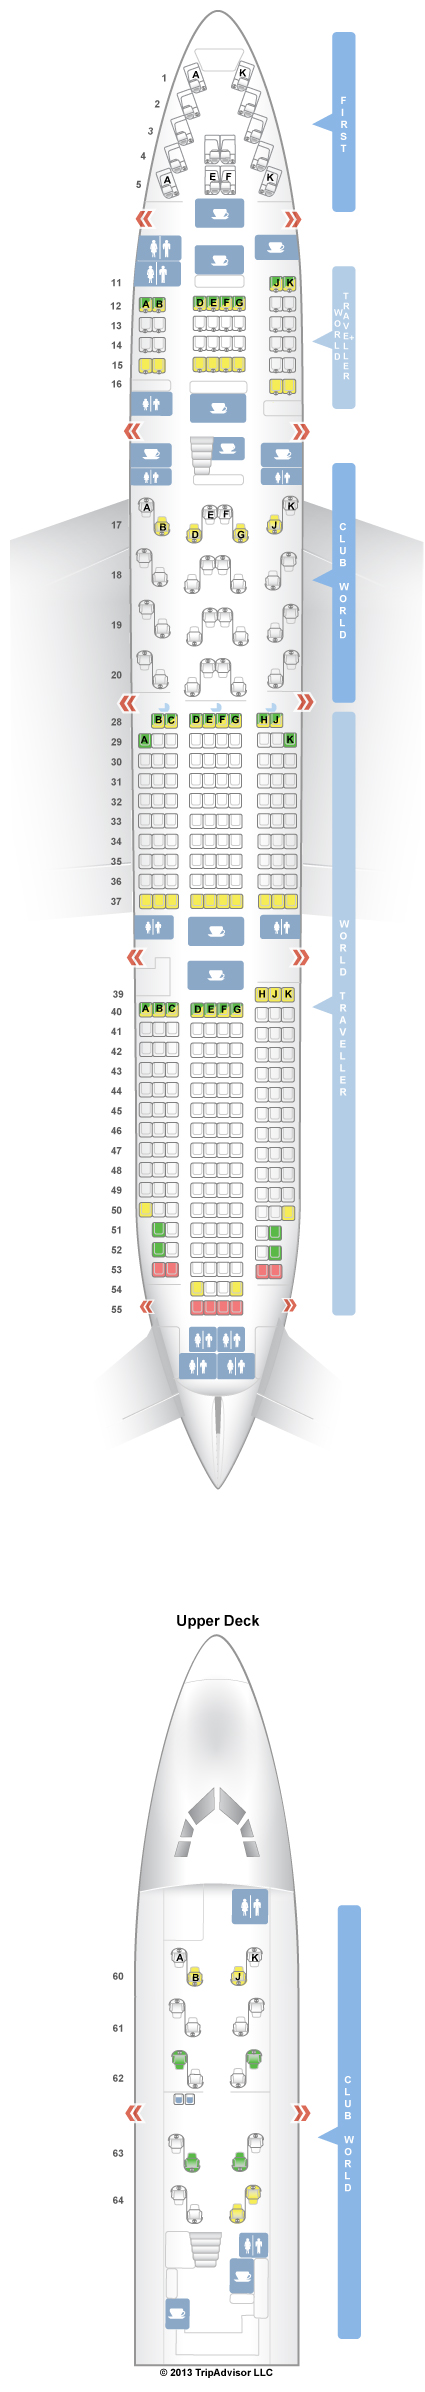 Seatguru seat map british airways boeing 747 400 744 v1 seats class seat type power video review publicscrutiny Image collections